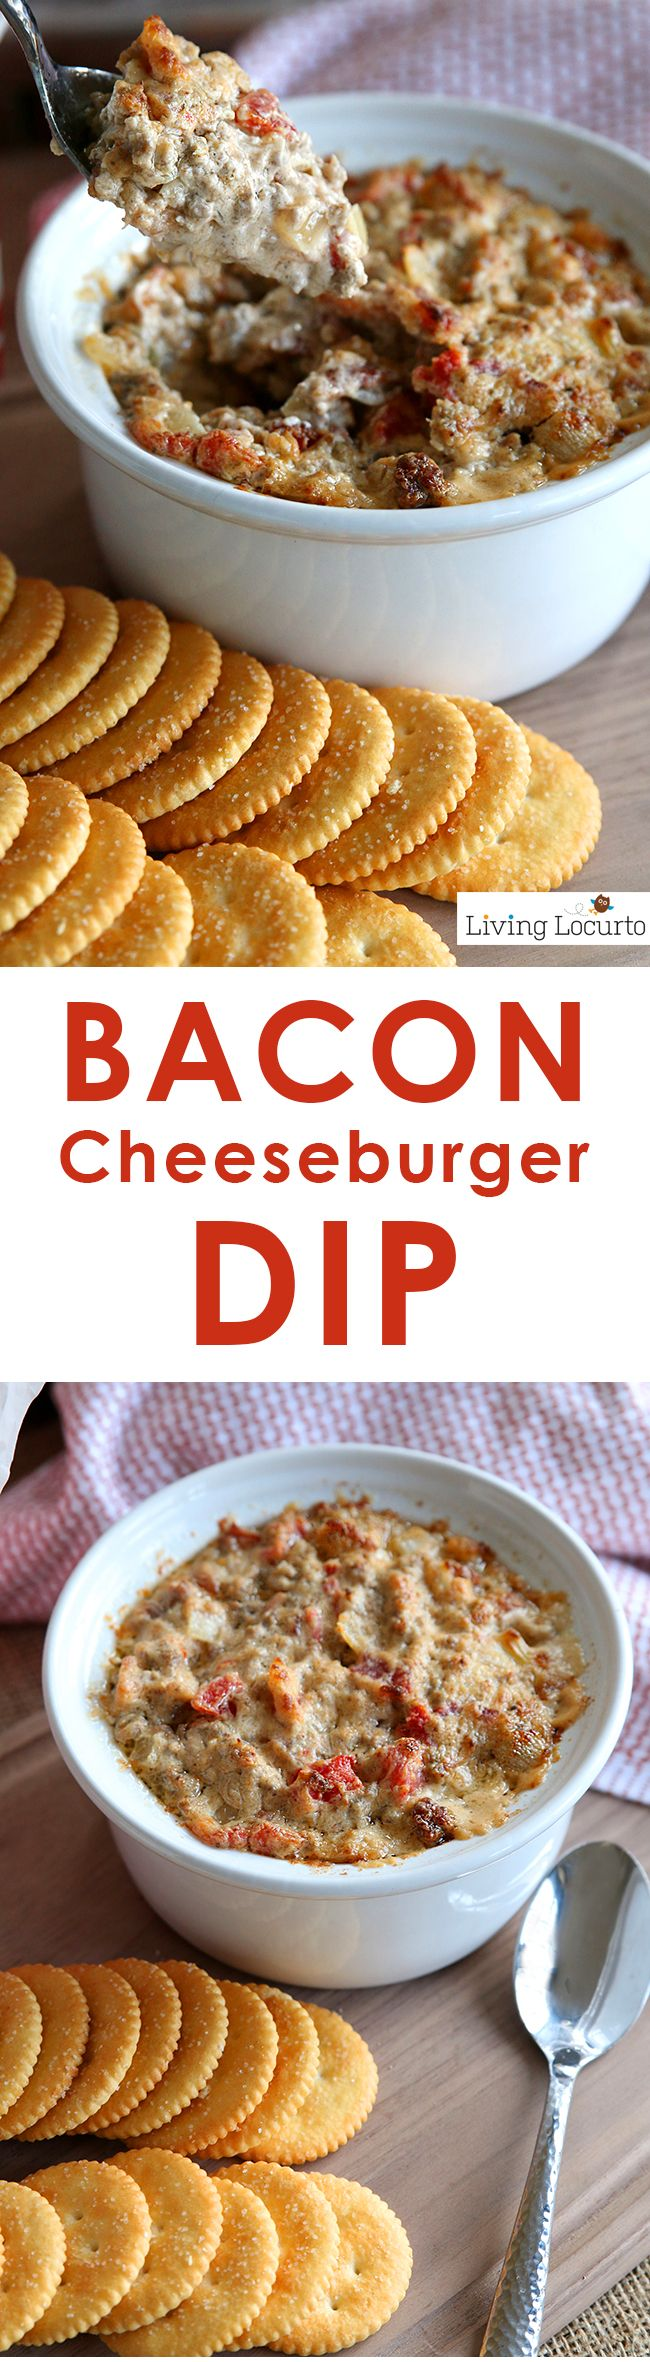 Amazing Bacon Cheeseburger Dip Recipe! It's the perfect snack recipe for a football party or delicious appetizer for your next holiday party. An addictive warm, cheesy dip recipe you can't stop eating! LivingLocurto.com